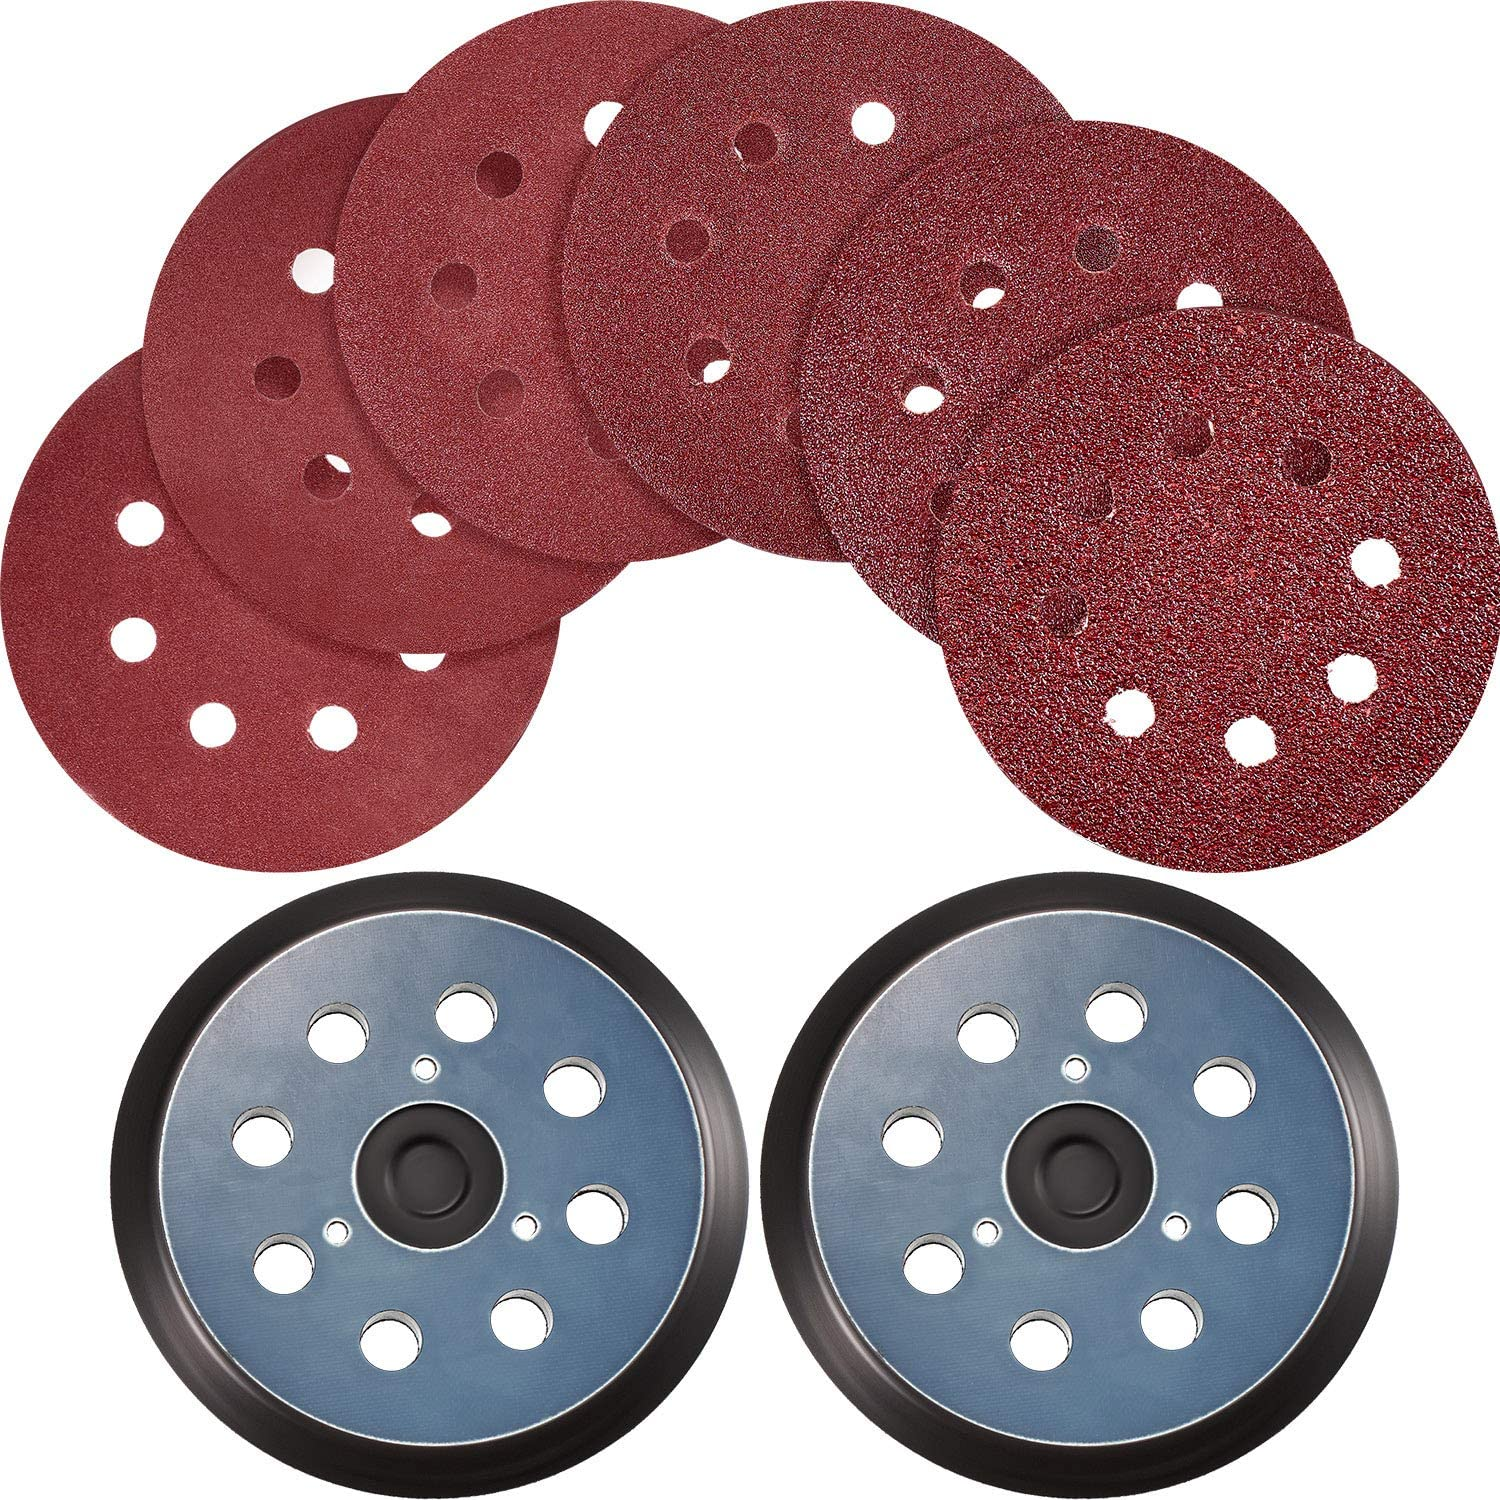 2 Pieces Sander Pads Replaces 5 Inch 8 Hole Hook and Loop Orbital Sanding Pad with 30 Pieces Sanding Discs Sandpaper 40 80 120 180 240 320 Grits Compatible with DeWalt, Makita and Porter Cable